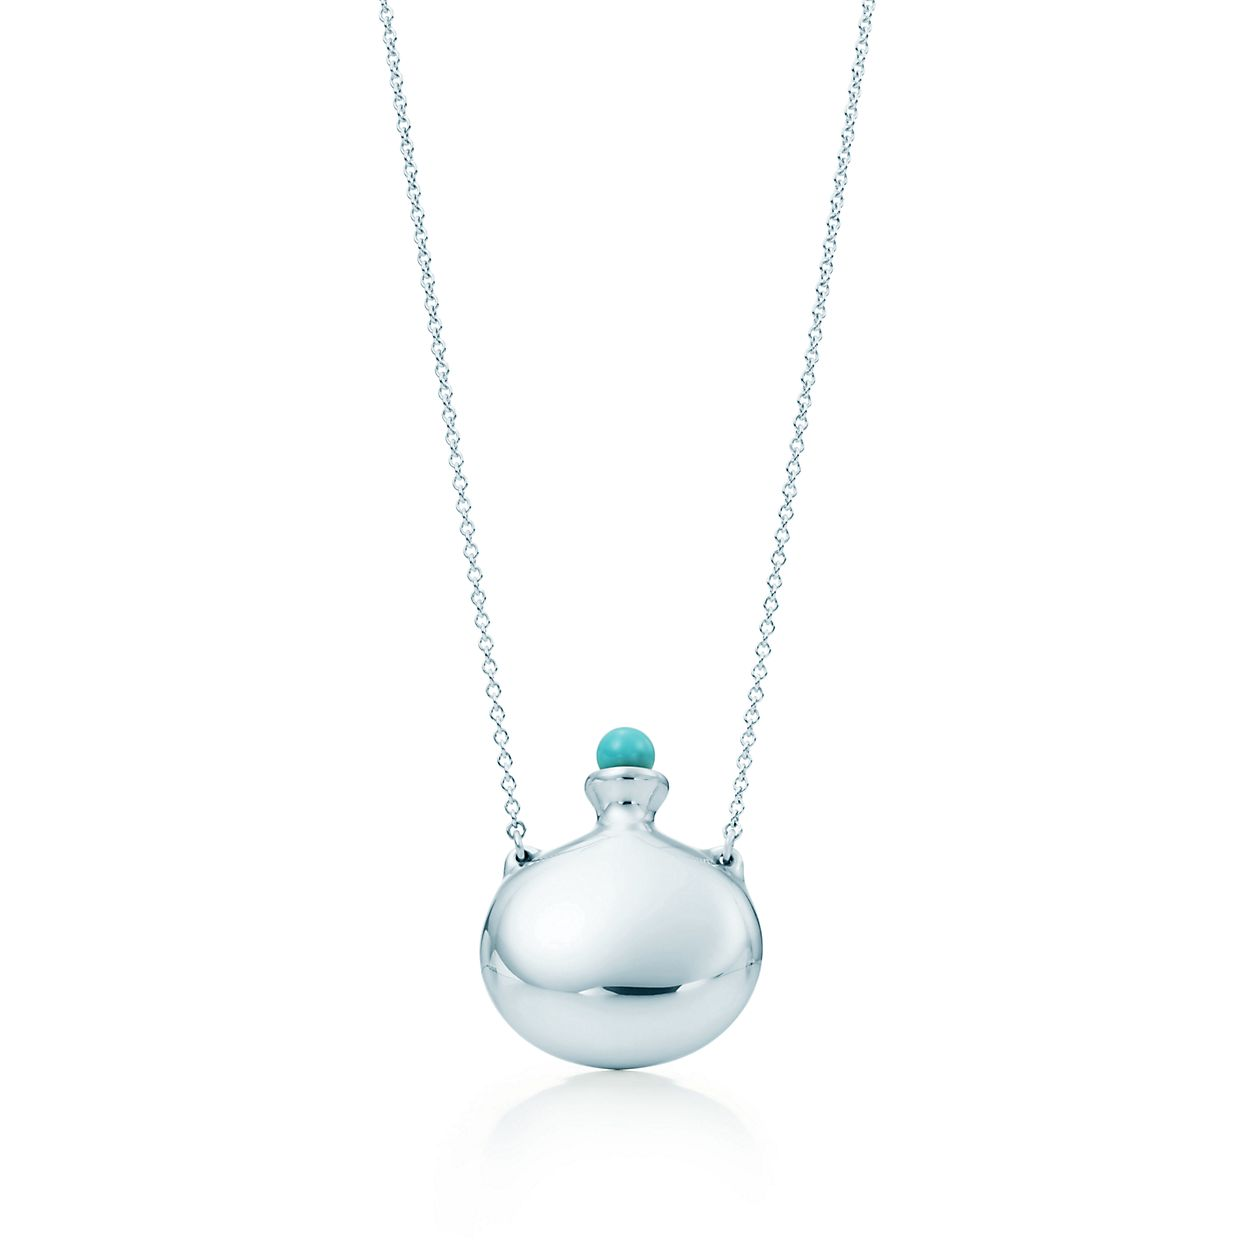 silver pendant products giftboxblue turquoise gift in necklace box